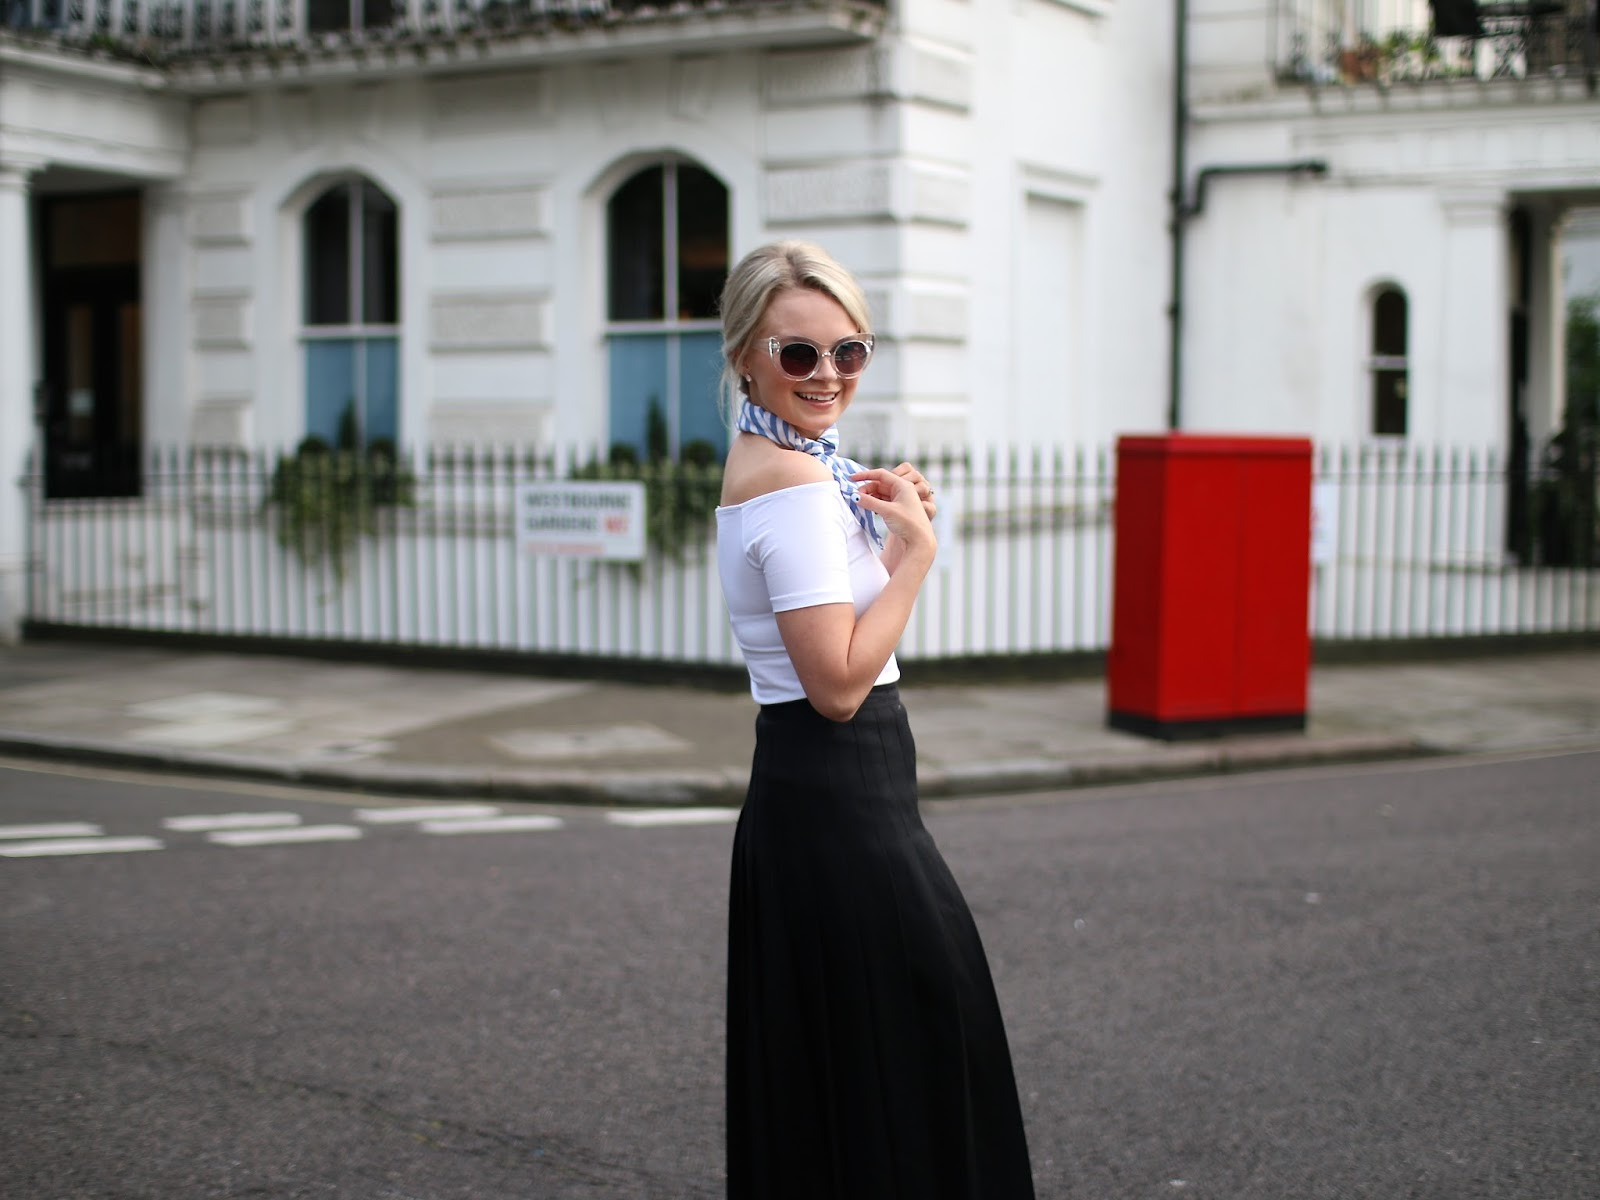 high waist vintage skirt, off the shoulder top and cat eye sunglasses